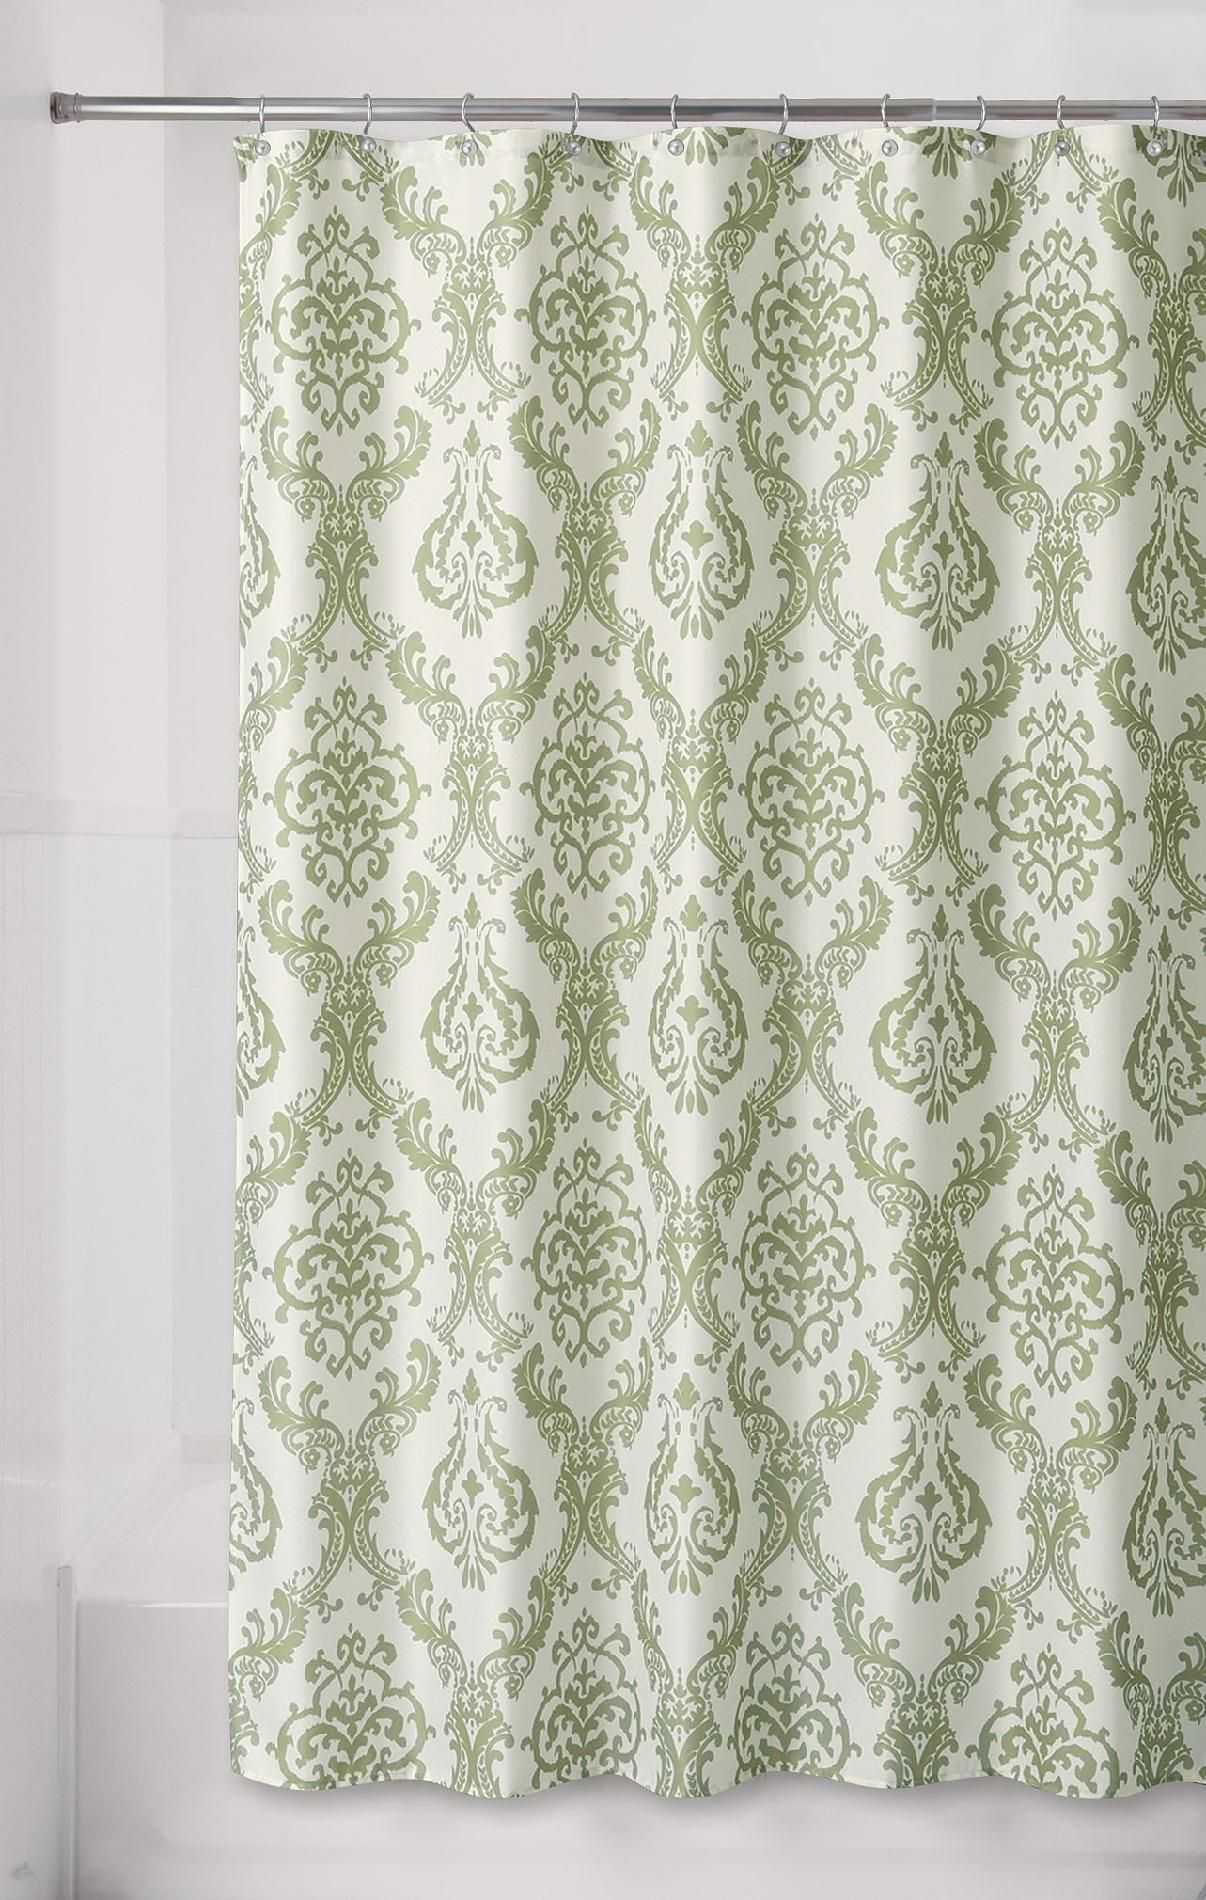 Sears Green Damask Shower Curtain With Images Pretty Shower